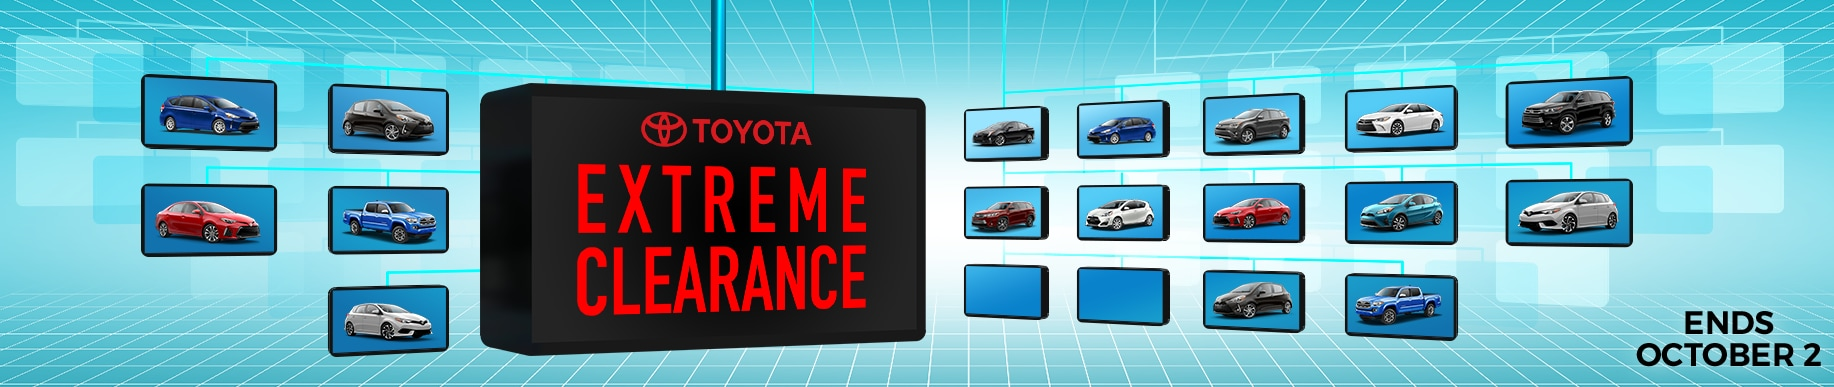 Toyota extreme clearance event